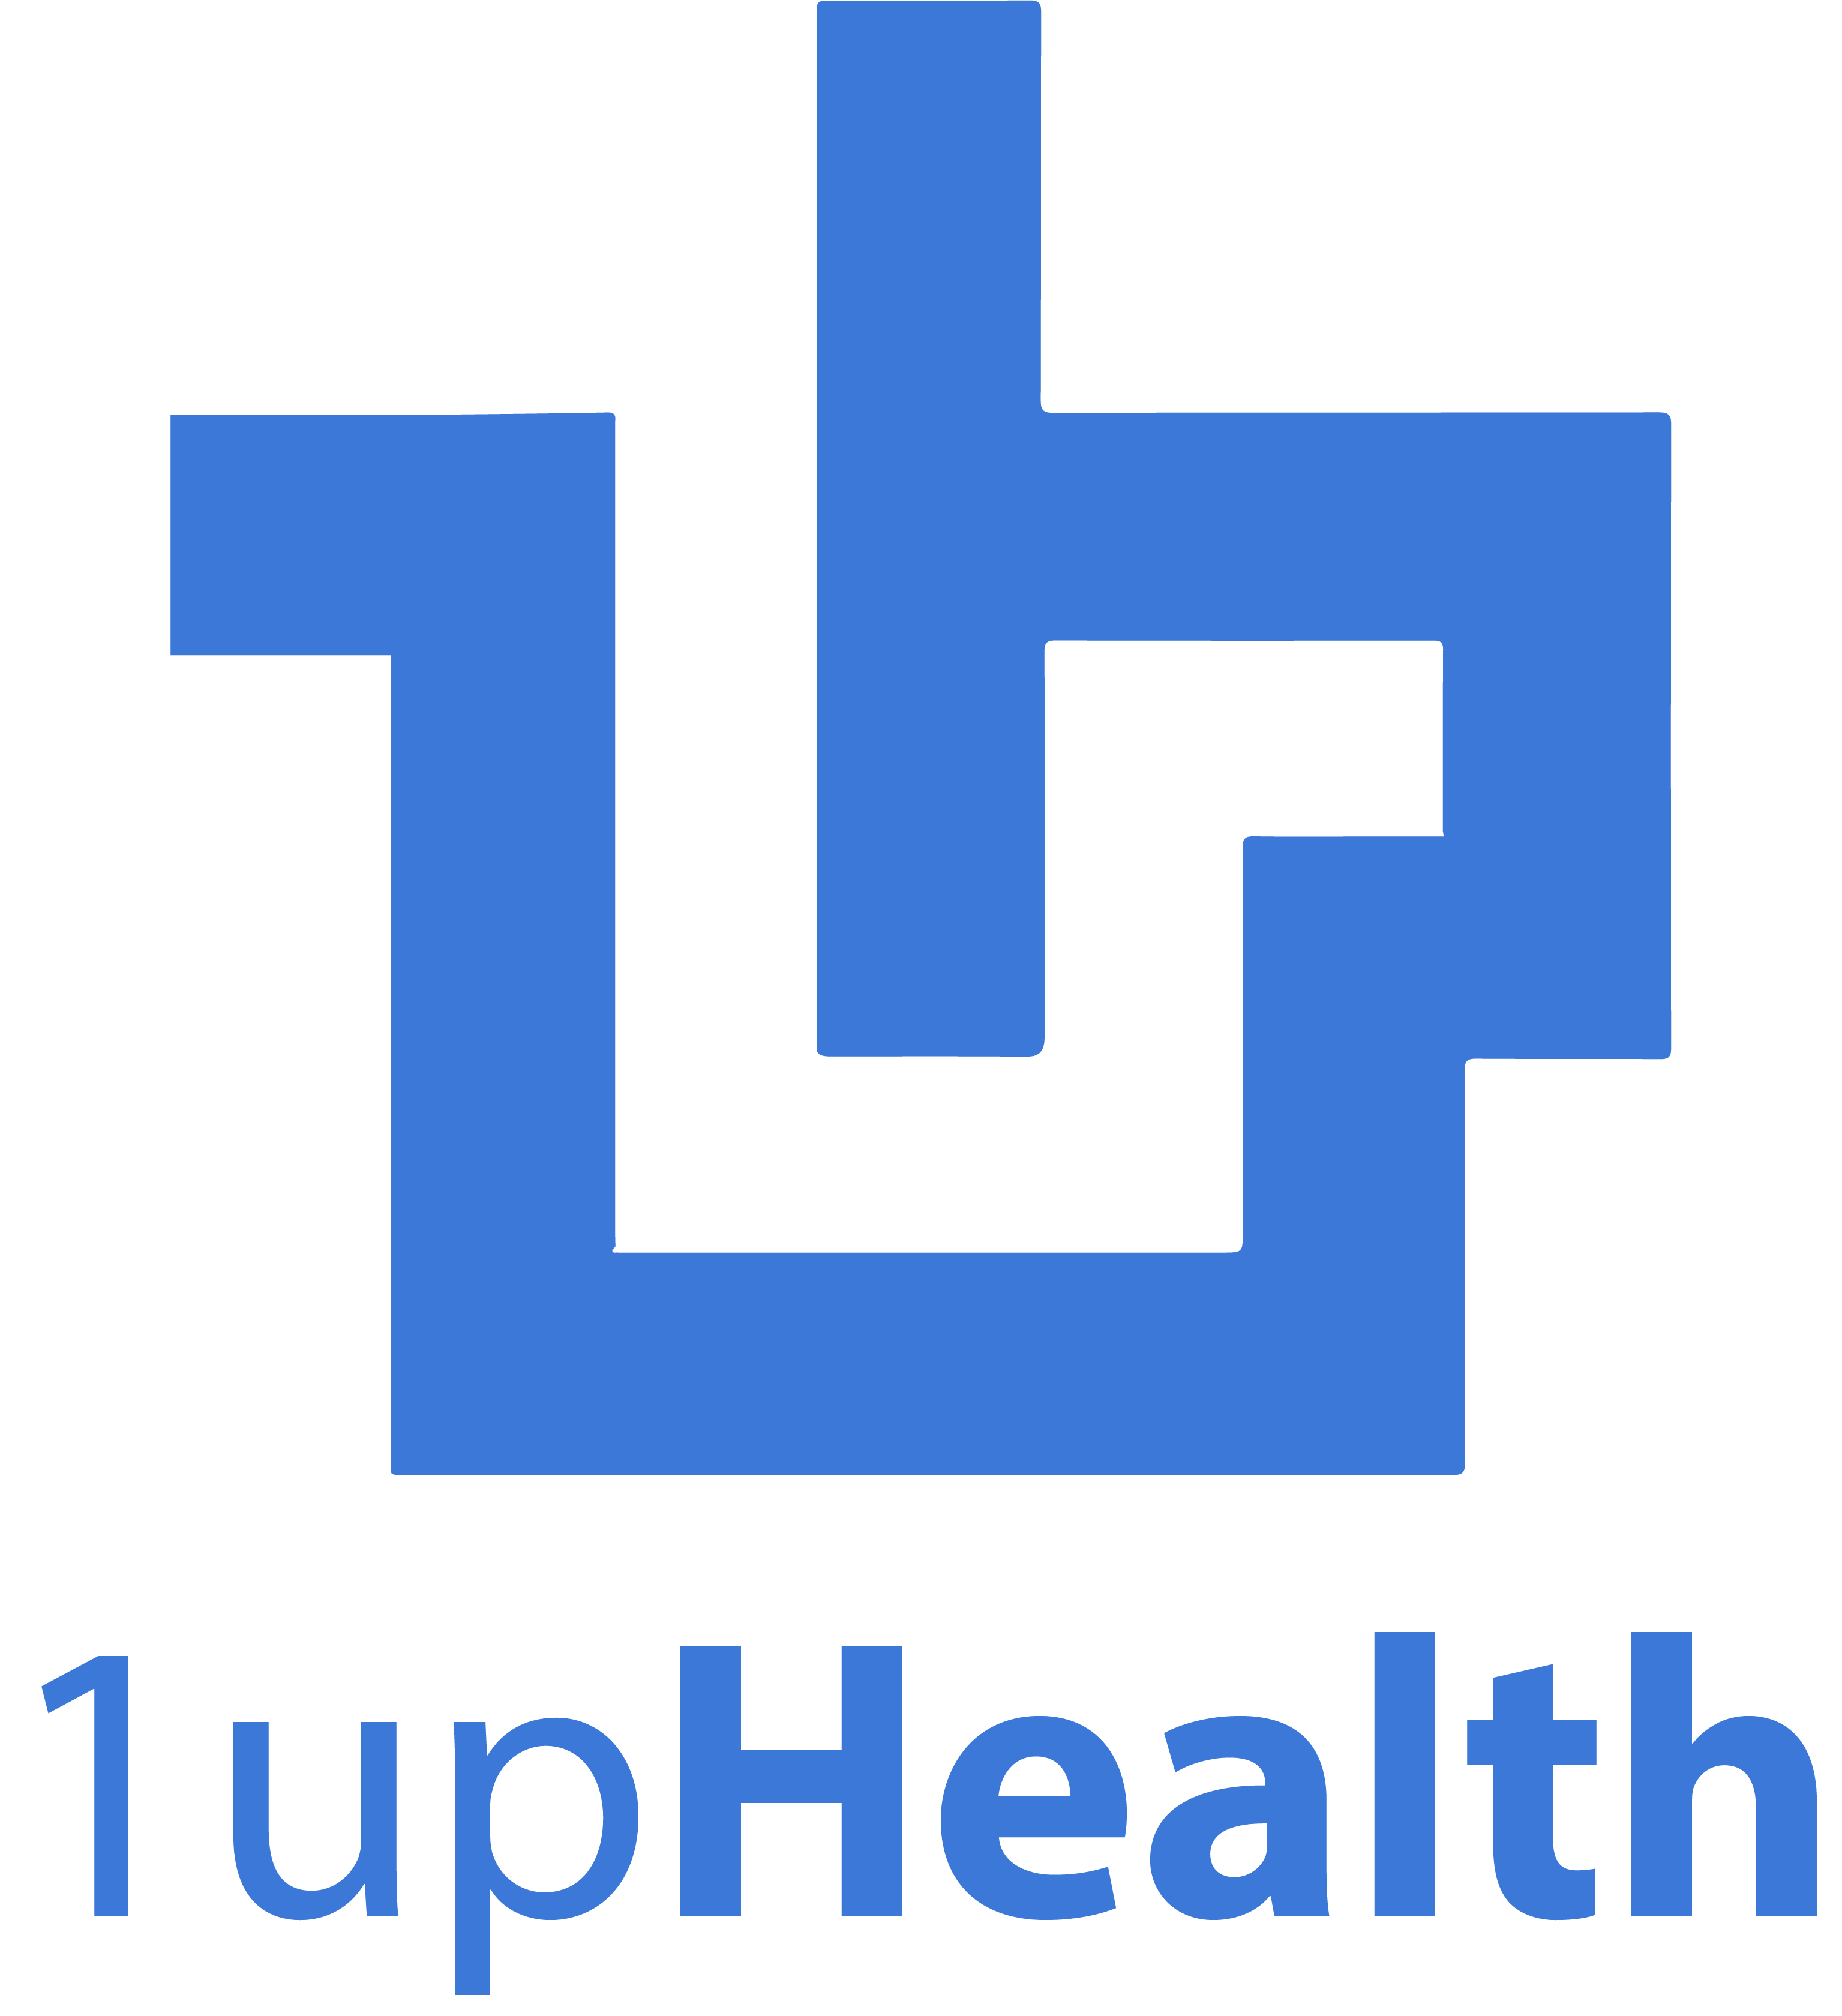 CARIN My Health Application: 1upHealth Patient App